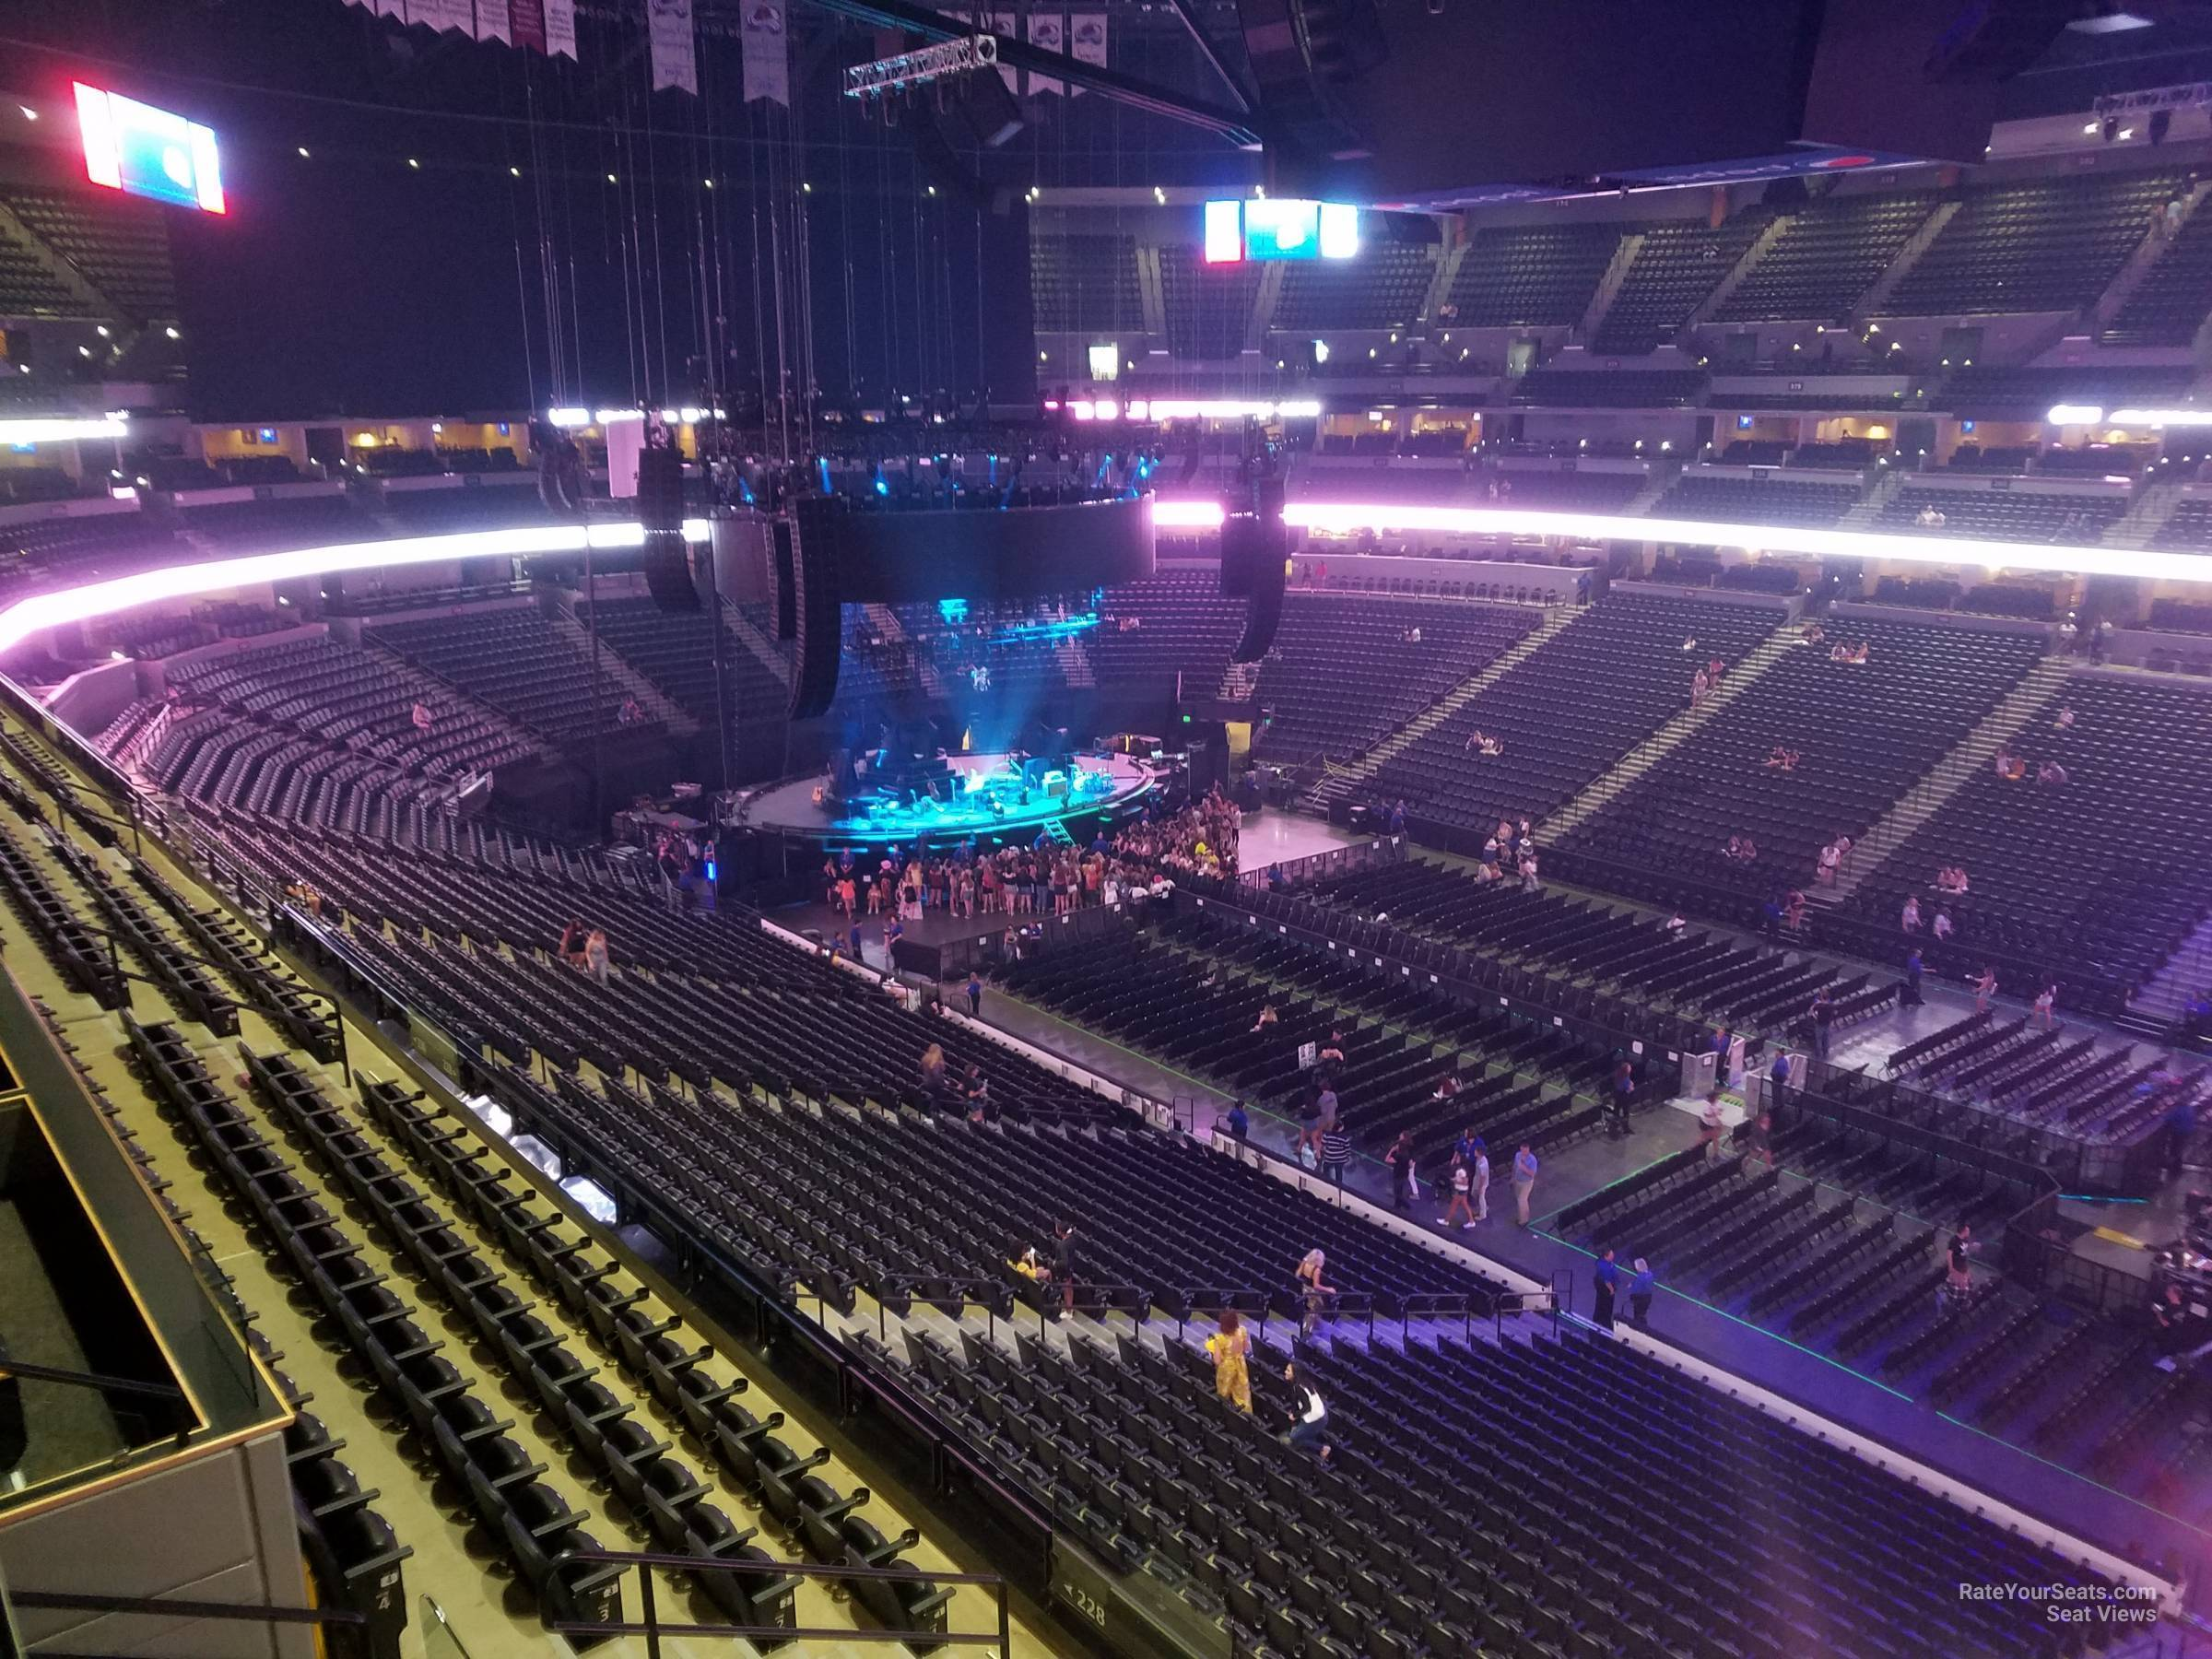 Pepsi Center: Pepsi Center Section 335 Concert Seating